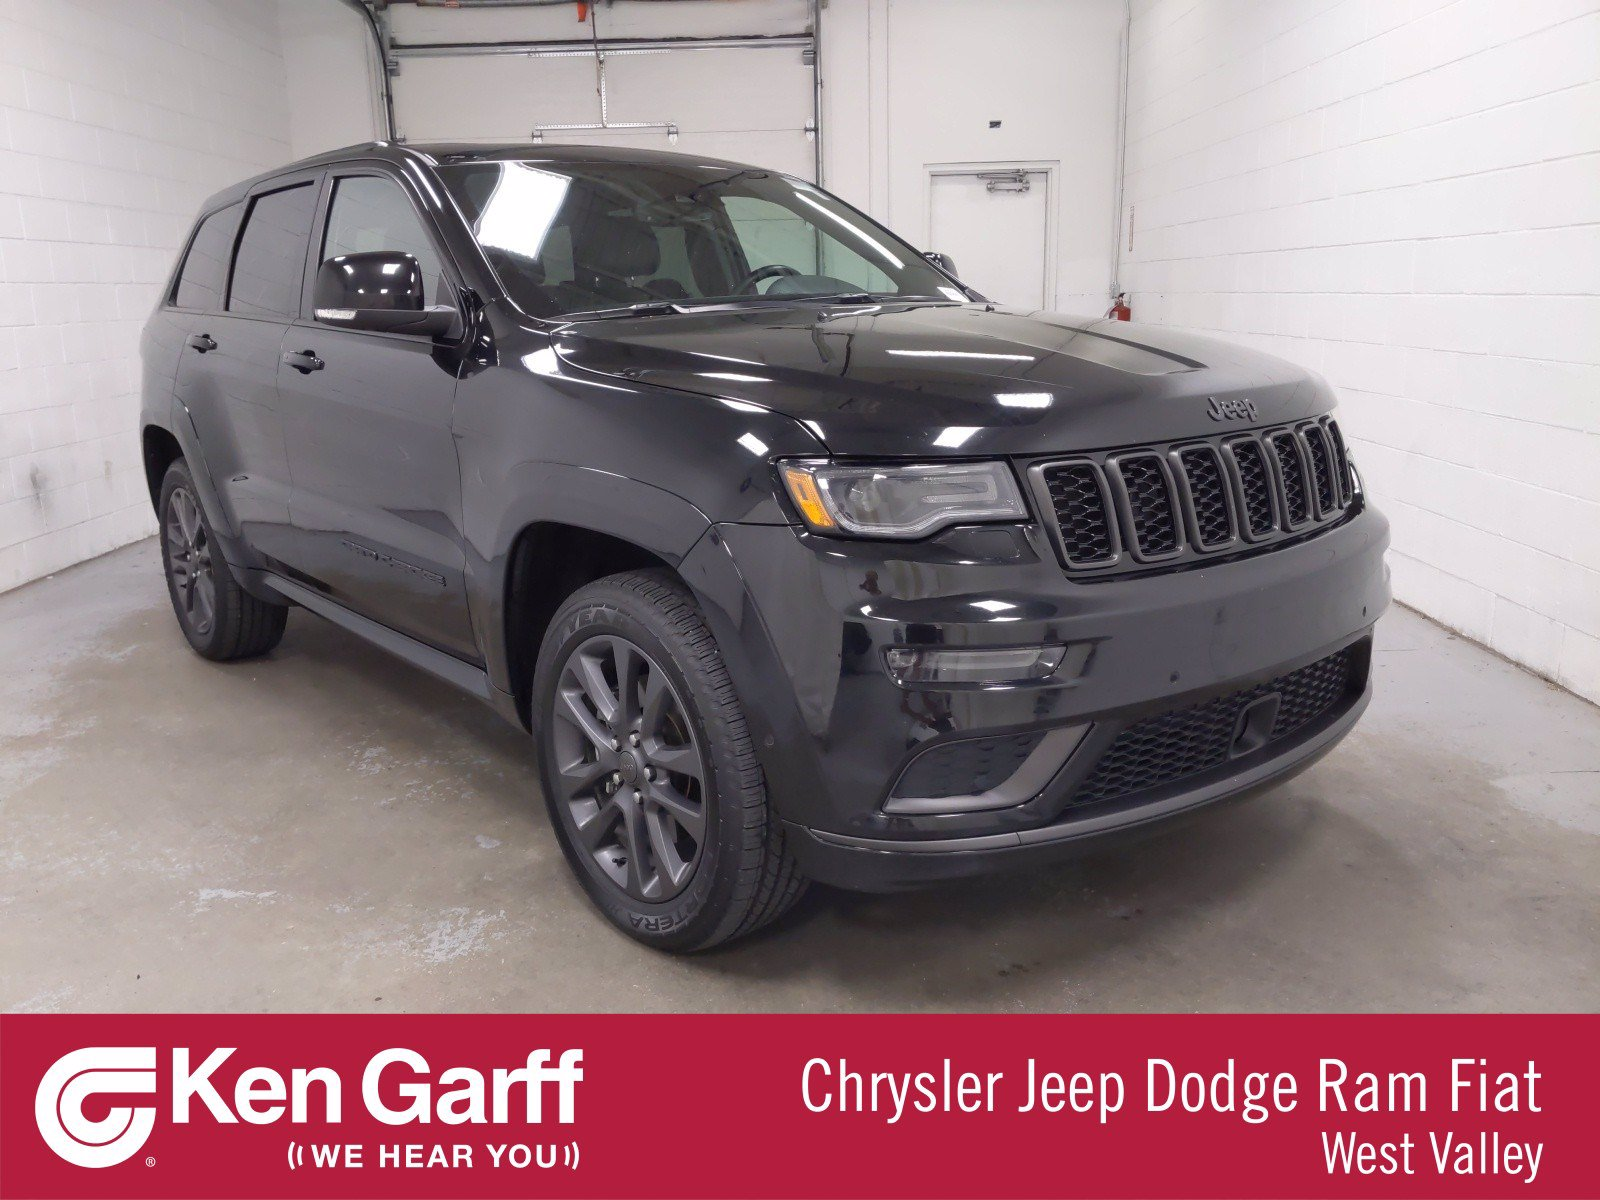 Pre Owned 2018 Jeep Grand Cherokee High Altitude Sport Utility In West Valley City 1dr0030 Ken Garff West Valley Chrysler Jeep Dodge Ram Fiat